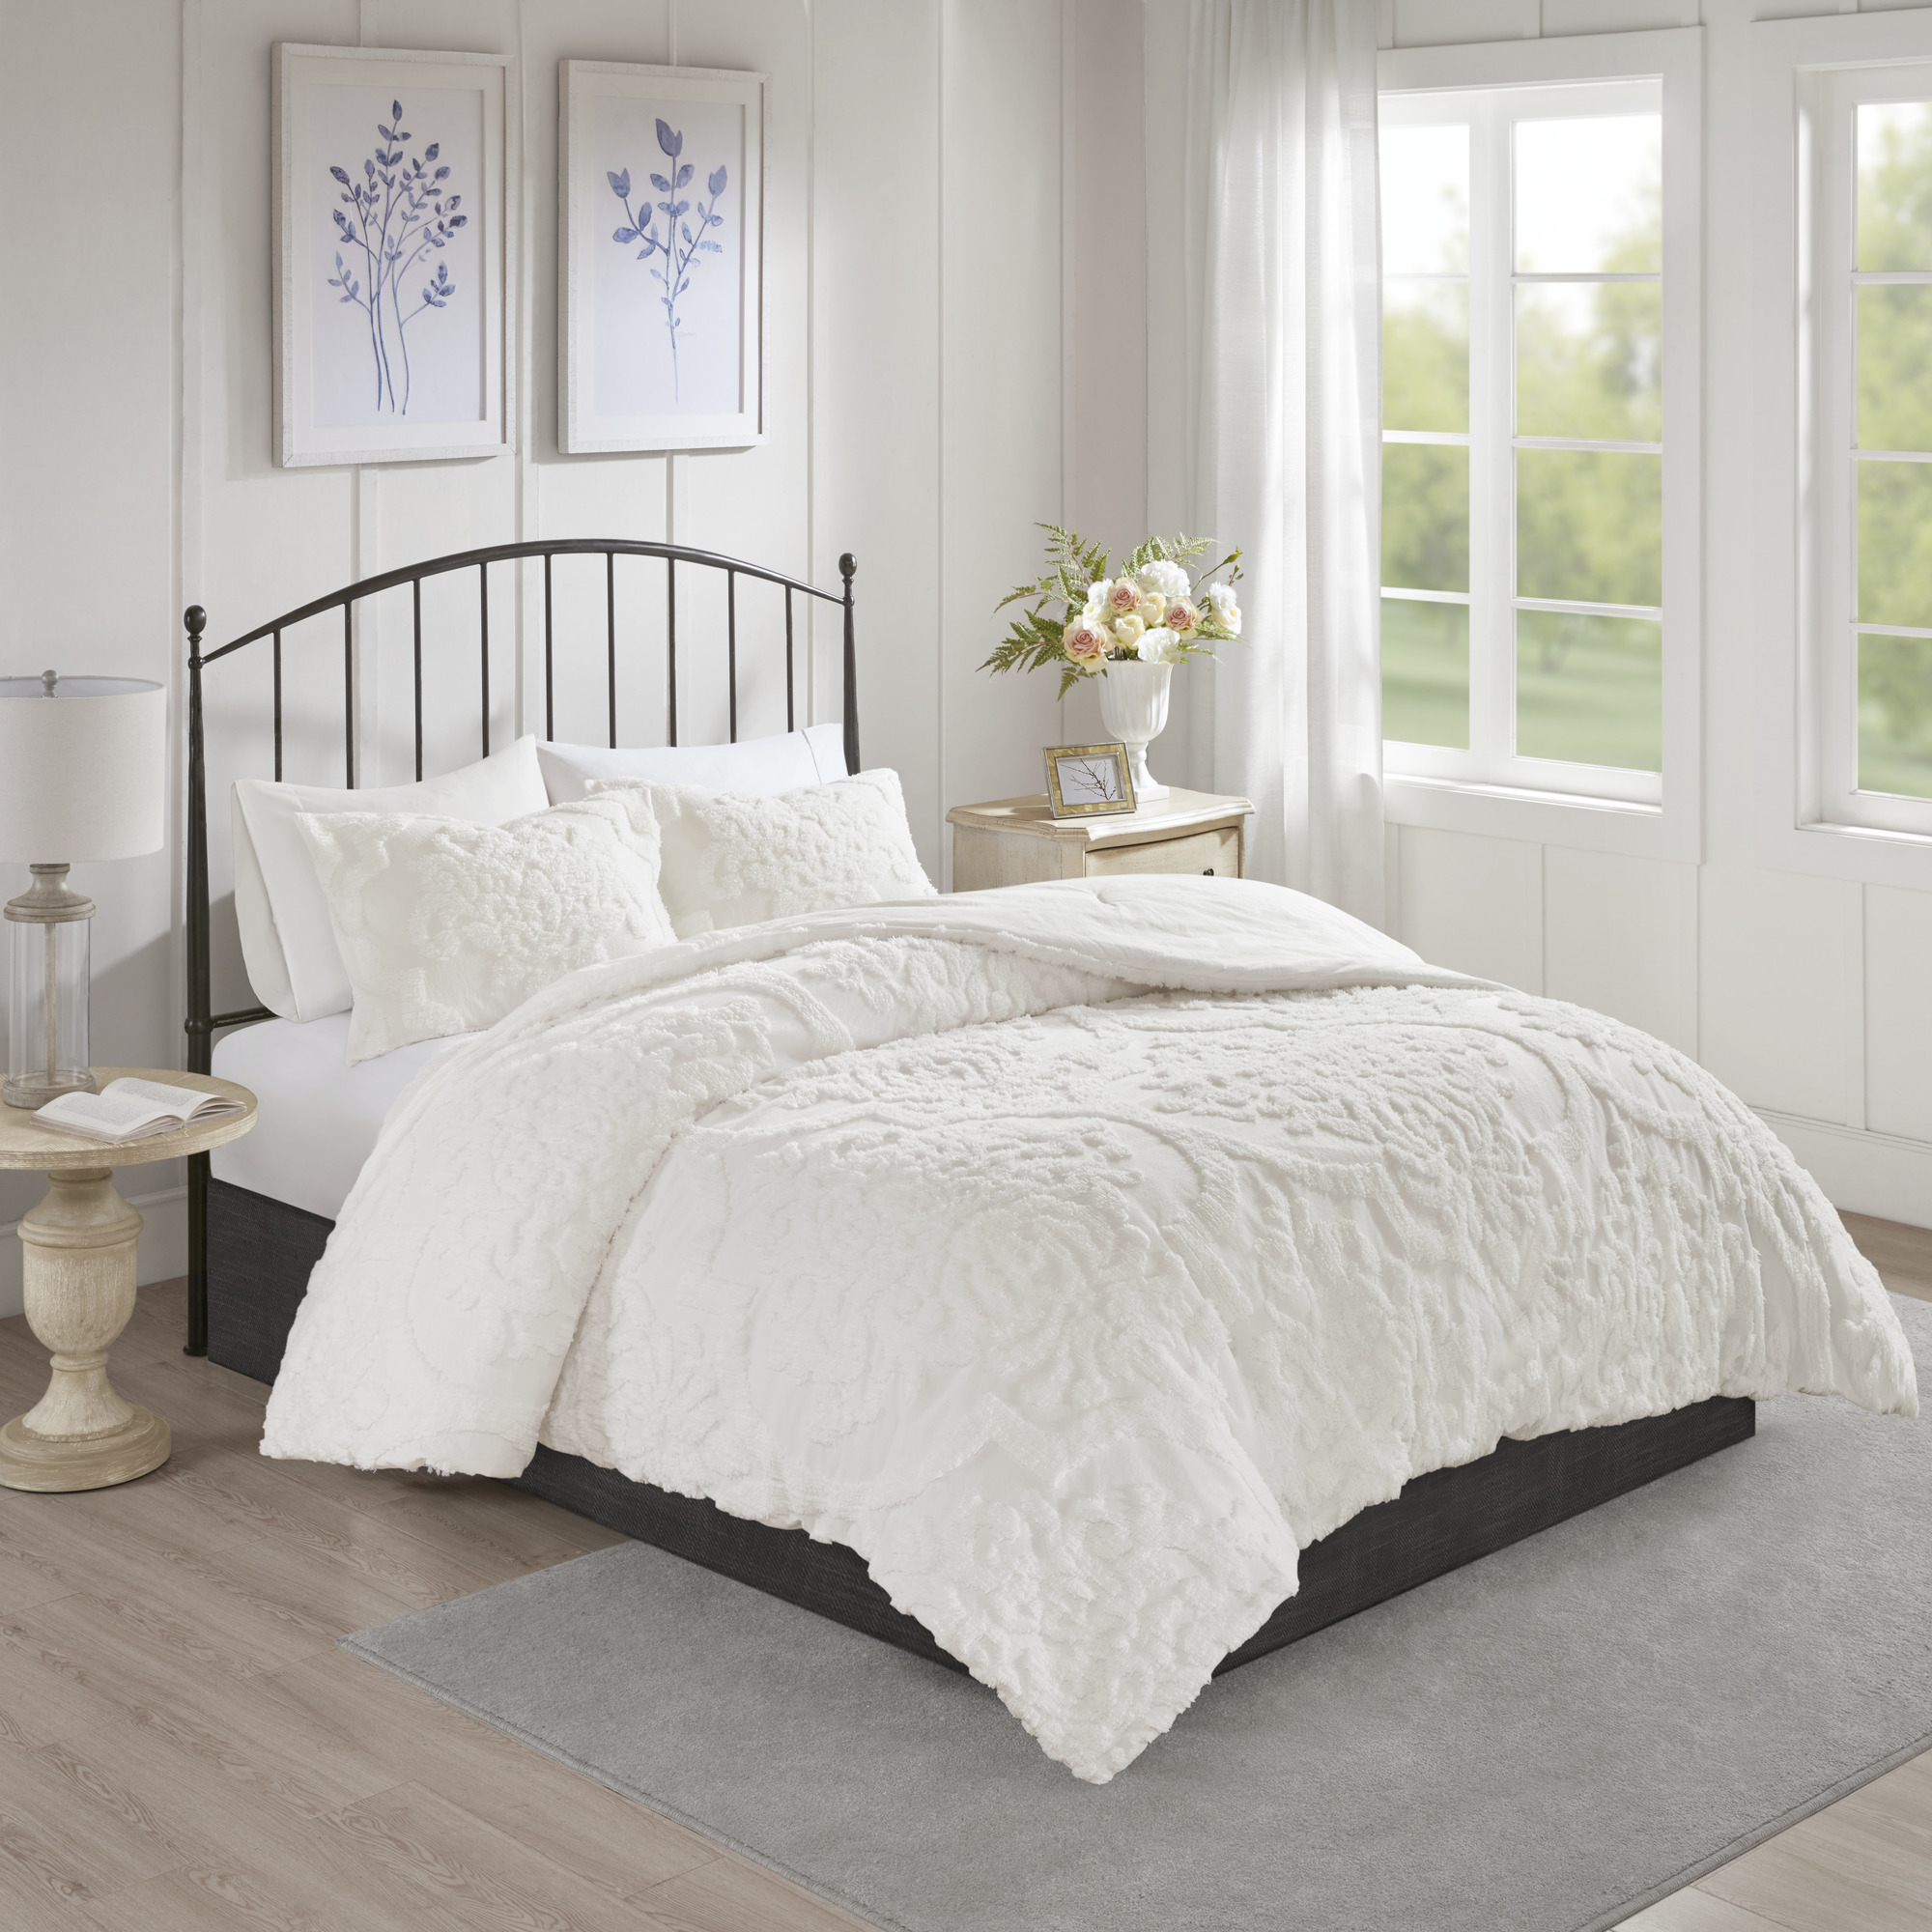 Home Essence Eugenia 3PC Tufted Cotton Chenille Damask Comforter Set